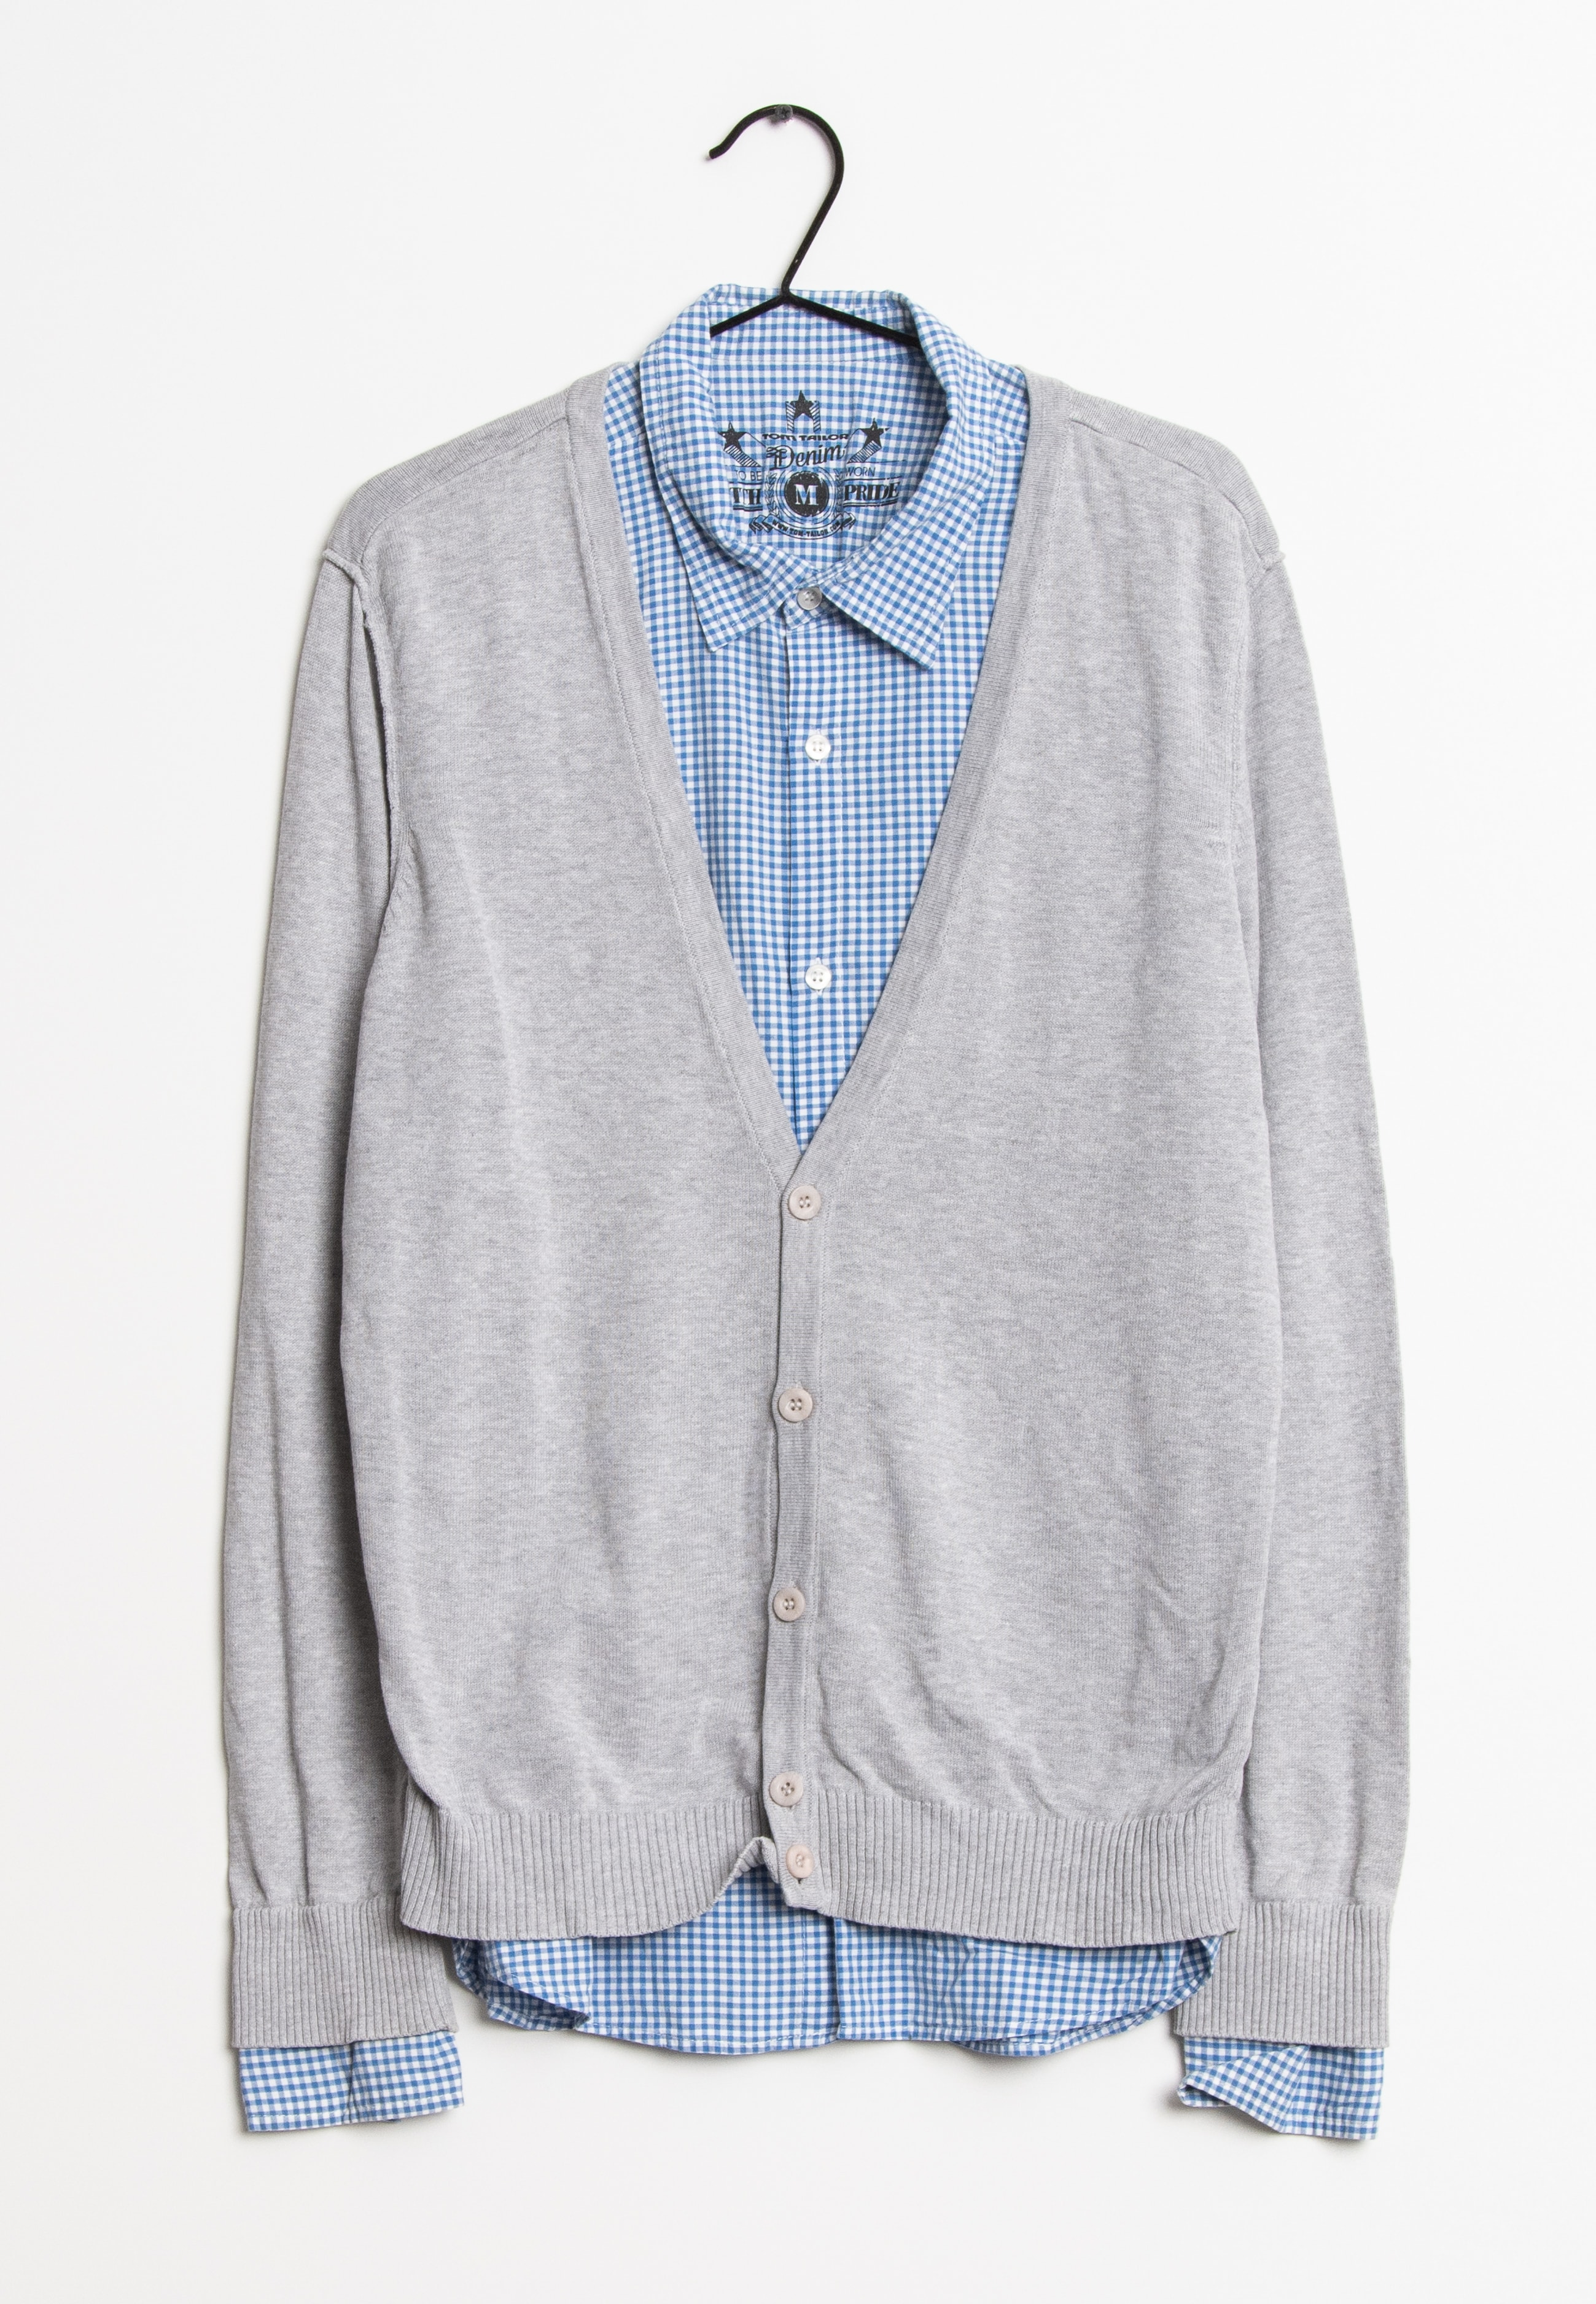 TOM TAILOR DENIM cardigan, grå, M